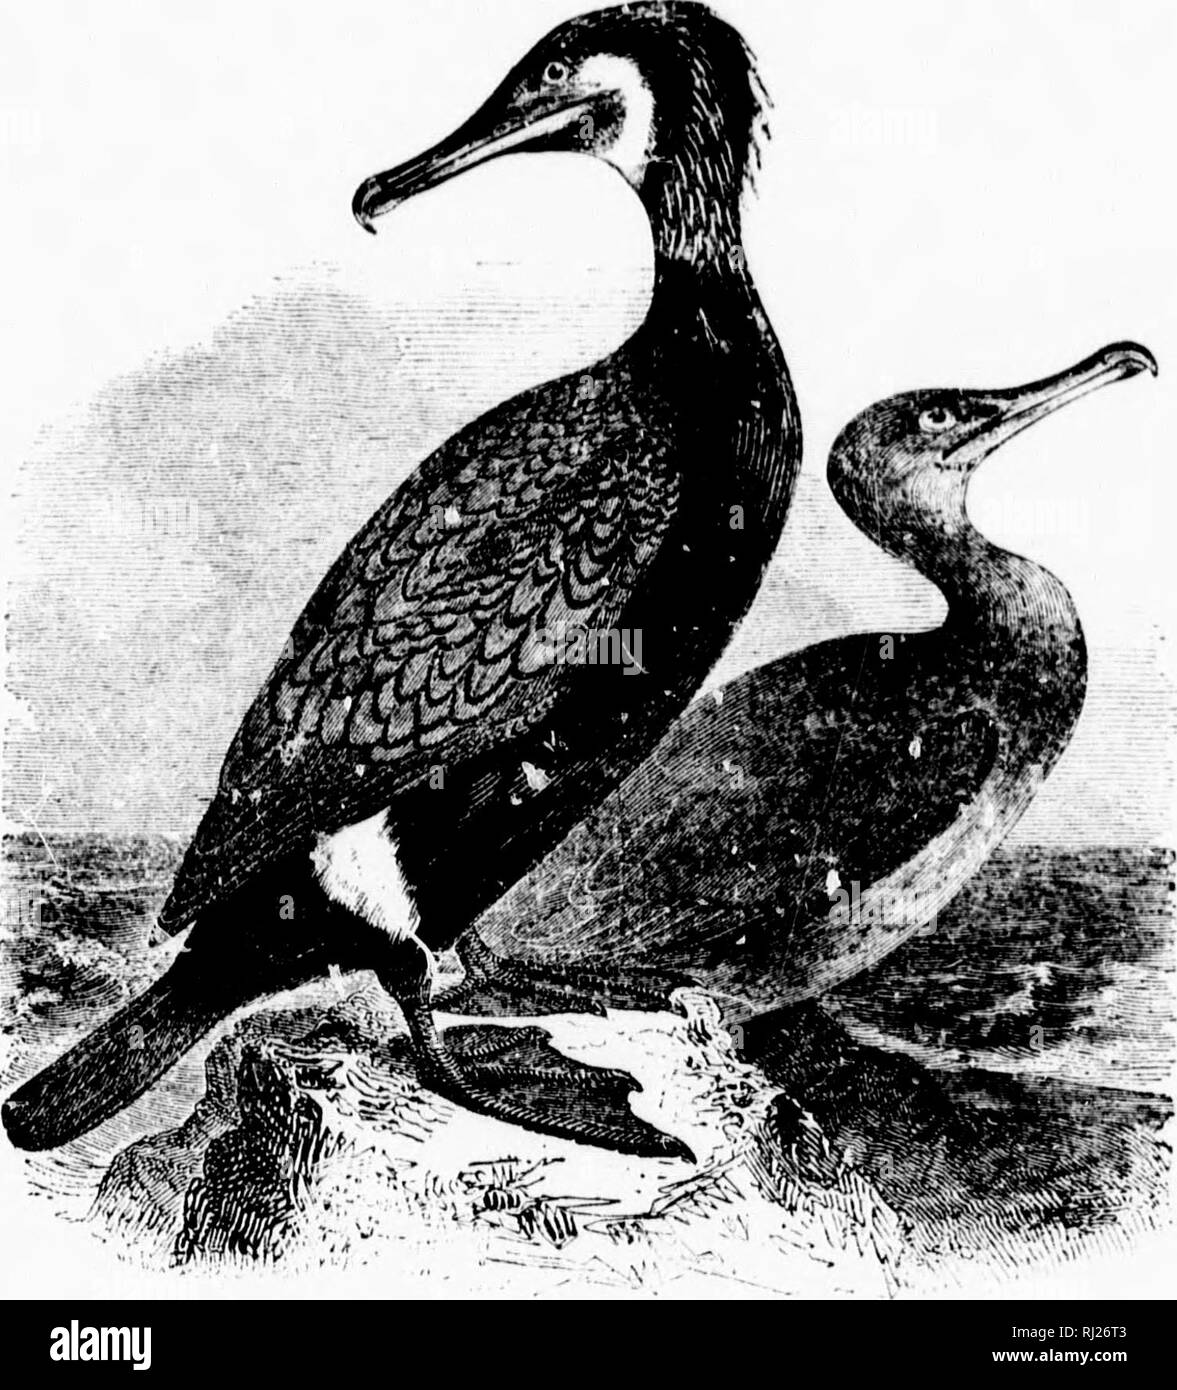 . A popular handbook of the ornithology of eastern North America [microform]. Birds; Ornithology; Game and game-birds; Water-birds; Oiseaux; Ornithologie; Gibier; Oiseaux aquatiques. nut; wing- wnish ; sac and licck sometimes )0 X i.Qj- ast of the St Indies, ; are like- he bay of pursuit of ]K'ninsula sissippi as ig species, elves, they of digest- for hours icli times, natives to leck, with- like some t affection will carry- had seen imong the nd return with fish, leaving it vice. ulf States, nples have. CORMORANT. SHAG. PH.'vI.AC'UOCnUAX CARIIO. Char. Prevailing color black, with metallic ref - Stock Image